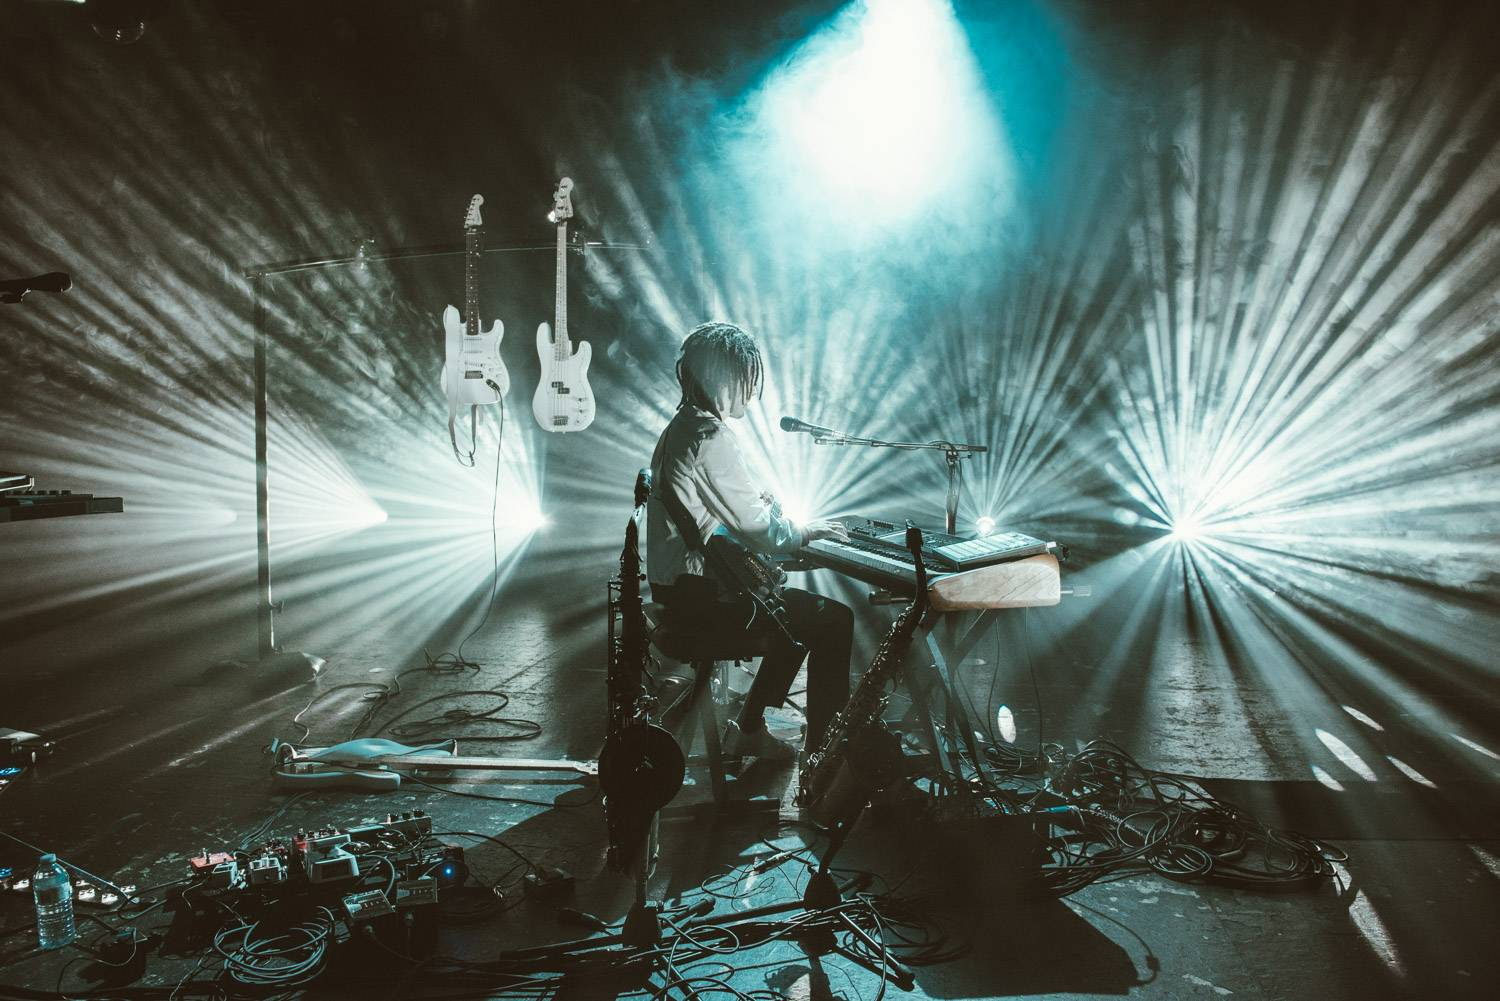 FKJ at the Commodore Ballroom, Vancouver, Apr 5 2019. Pavel Boiko photo.